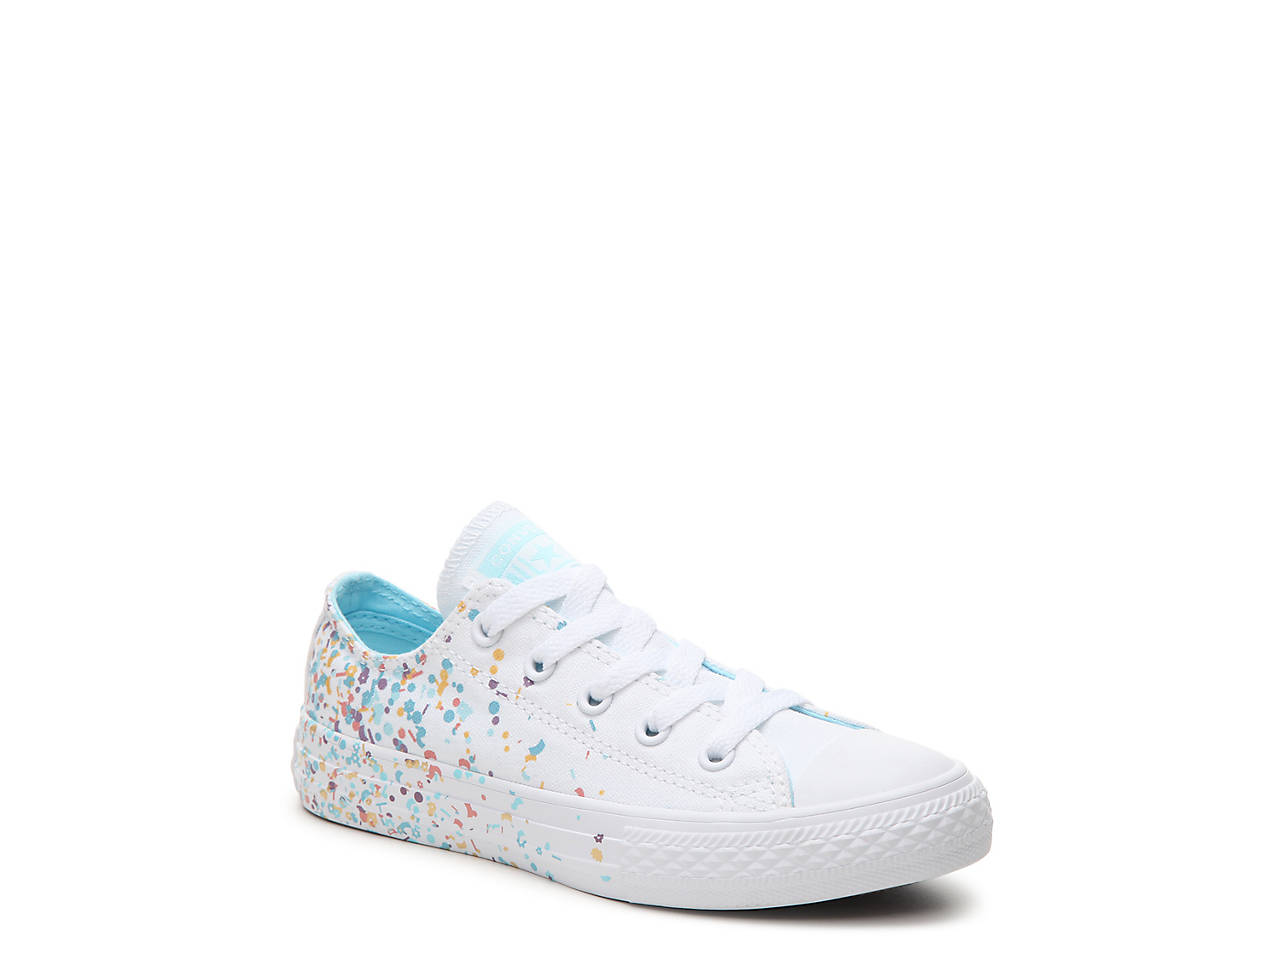 40b214824443 Converse Chuck Taylor All Star Confetti Toddler   Youth Sneaker Kids ...